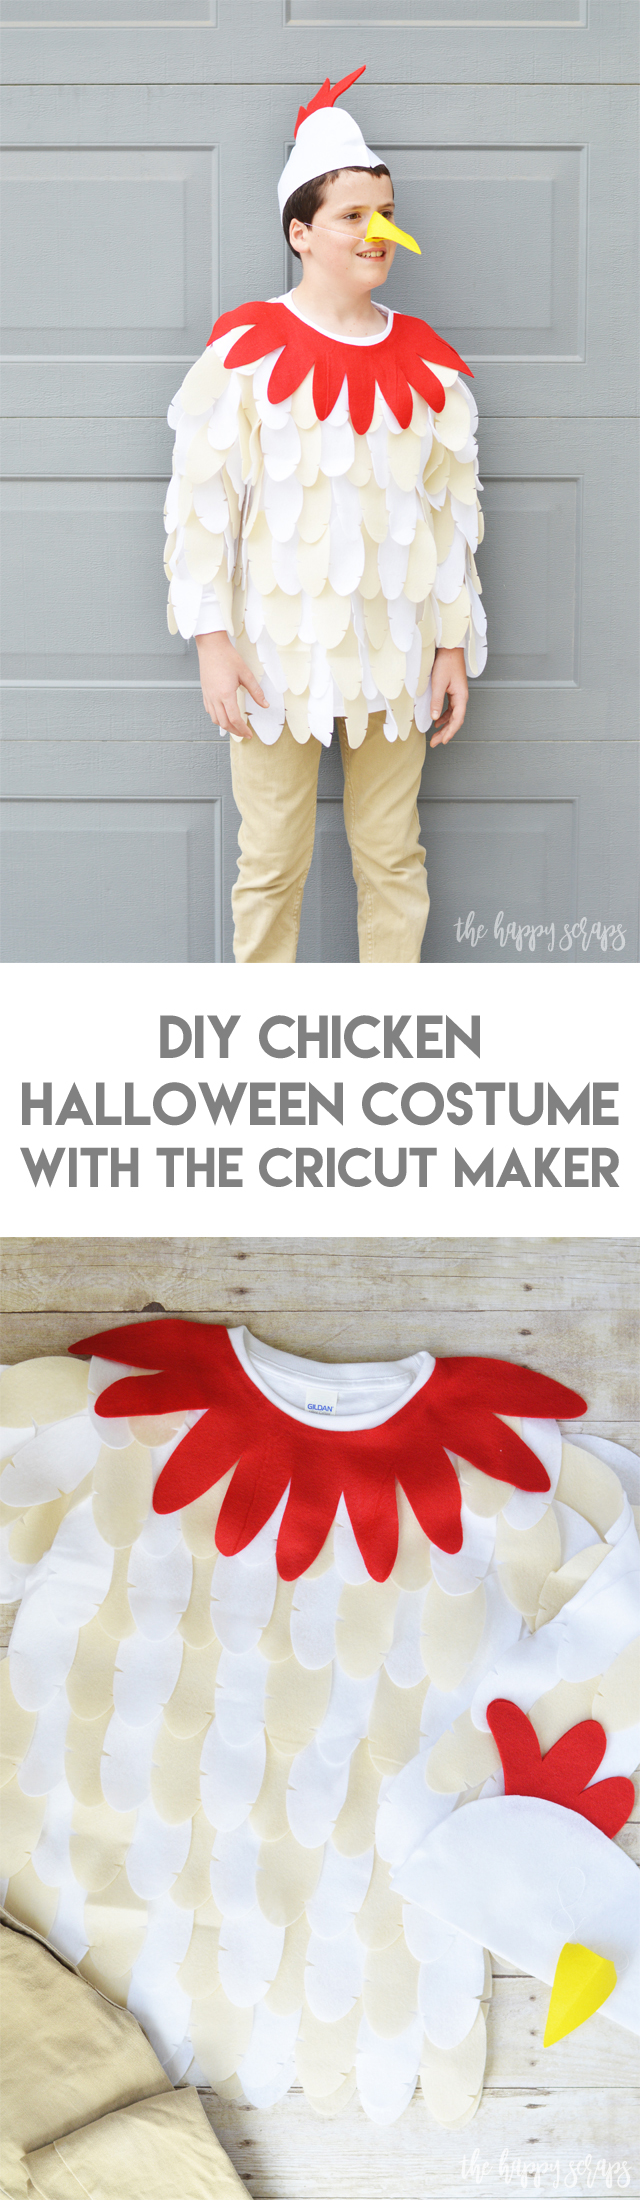 Create these DIY Farmer and Animal Halloween Costumes with the Cricut Maker along with this tutorial that I'm sharing! They are no-sew and fun to make!